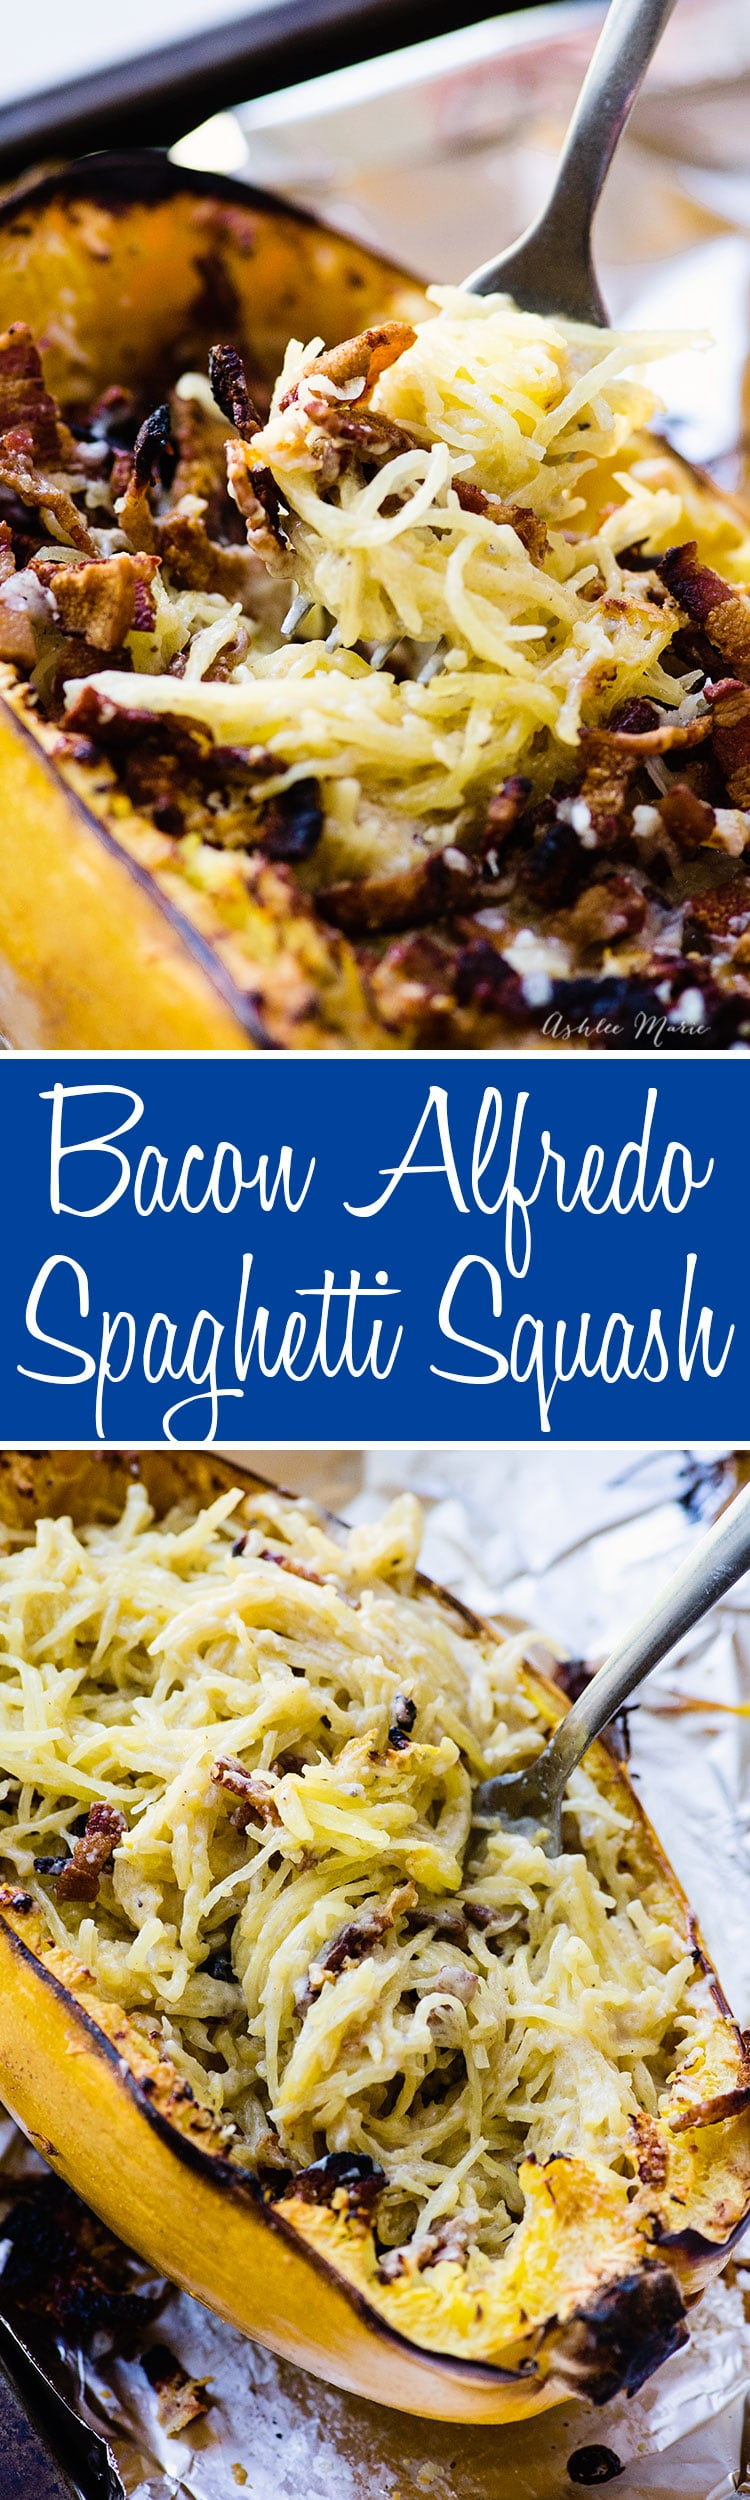 spaghetti squash is a wonderful flavor and base for bacon alfredo